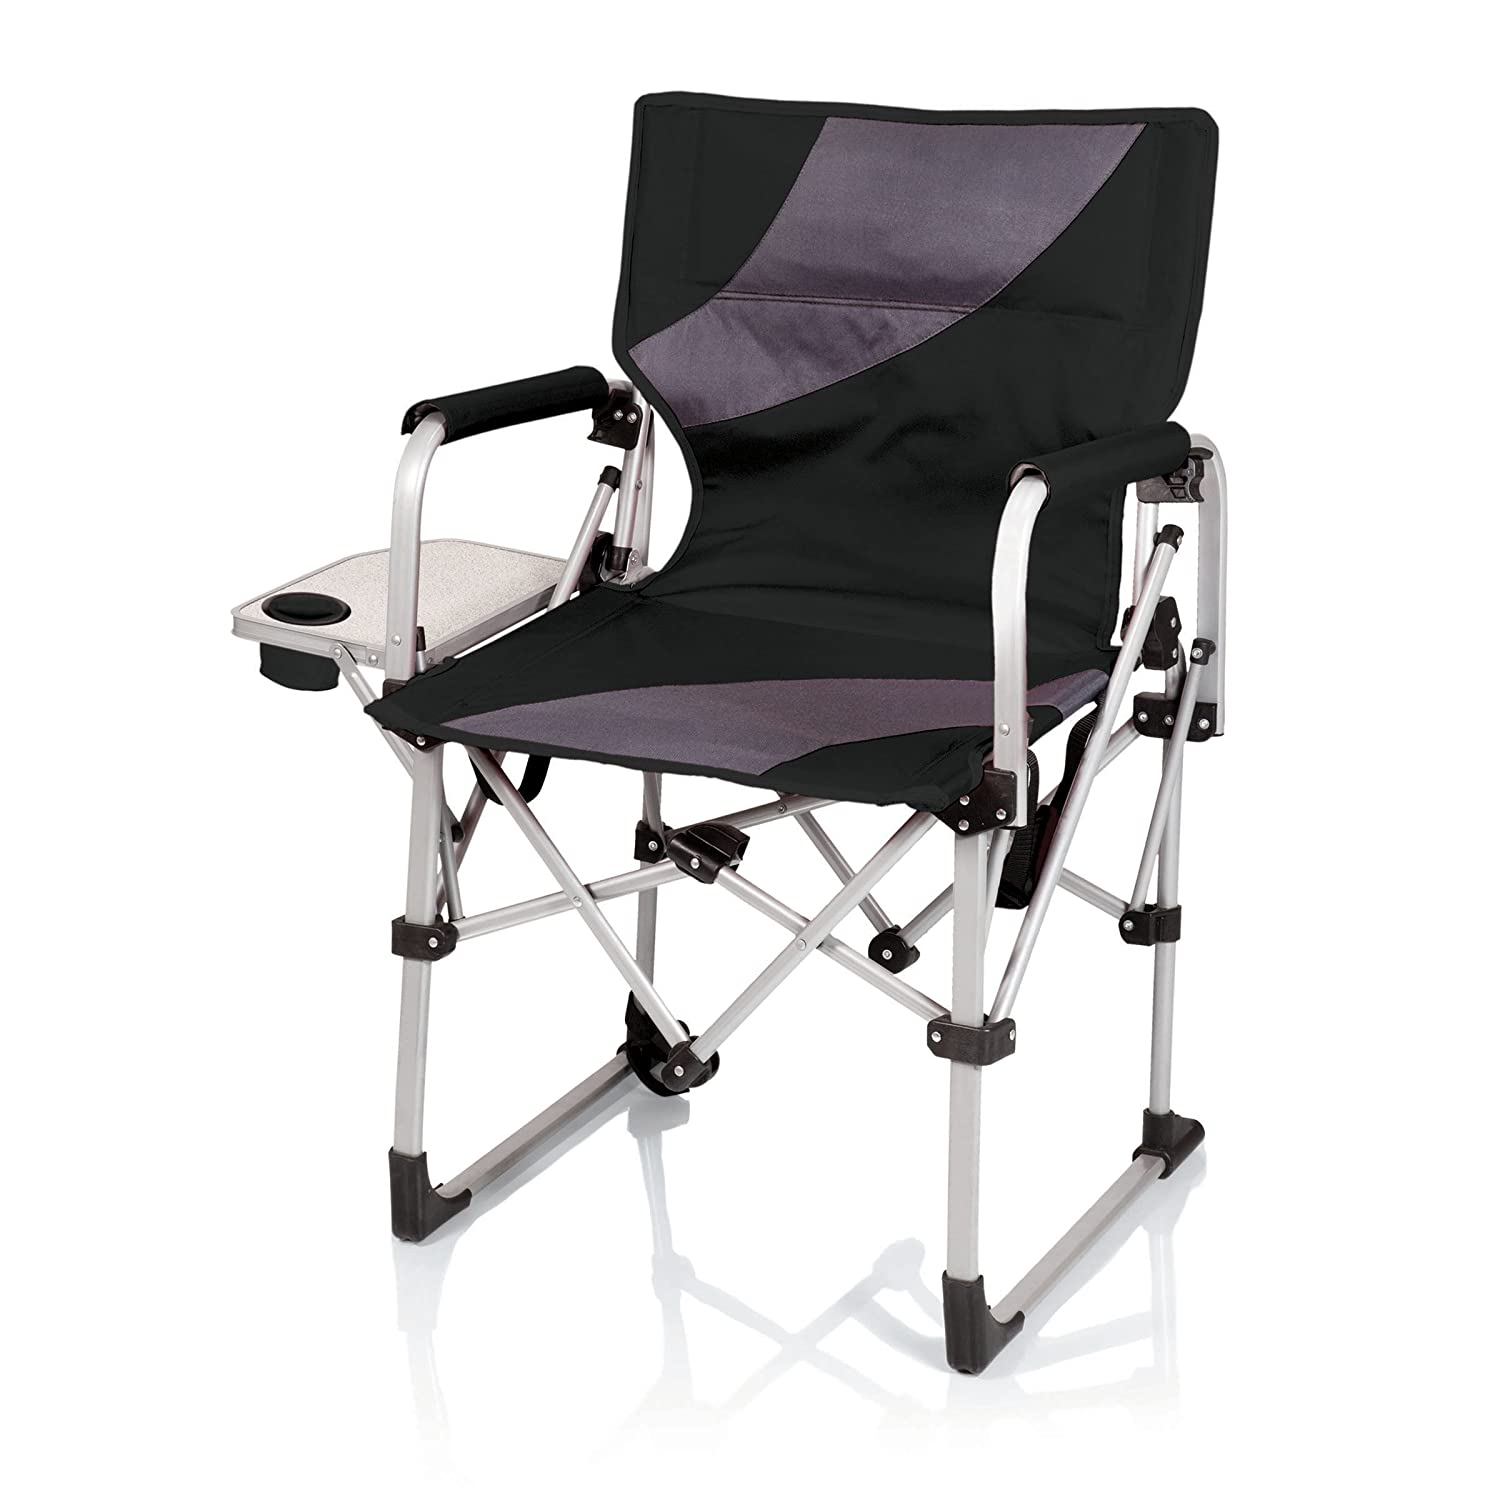 Picnic Time Meta Portable Folding Chair Black Grey Amazon